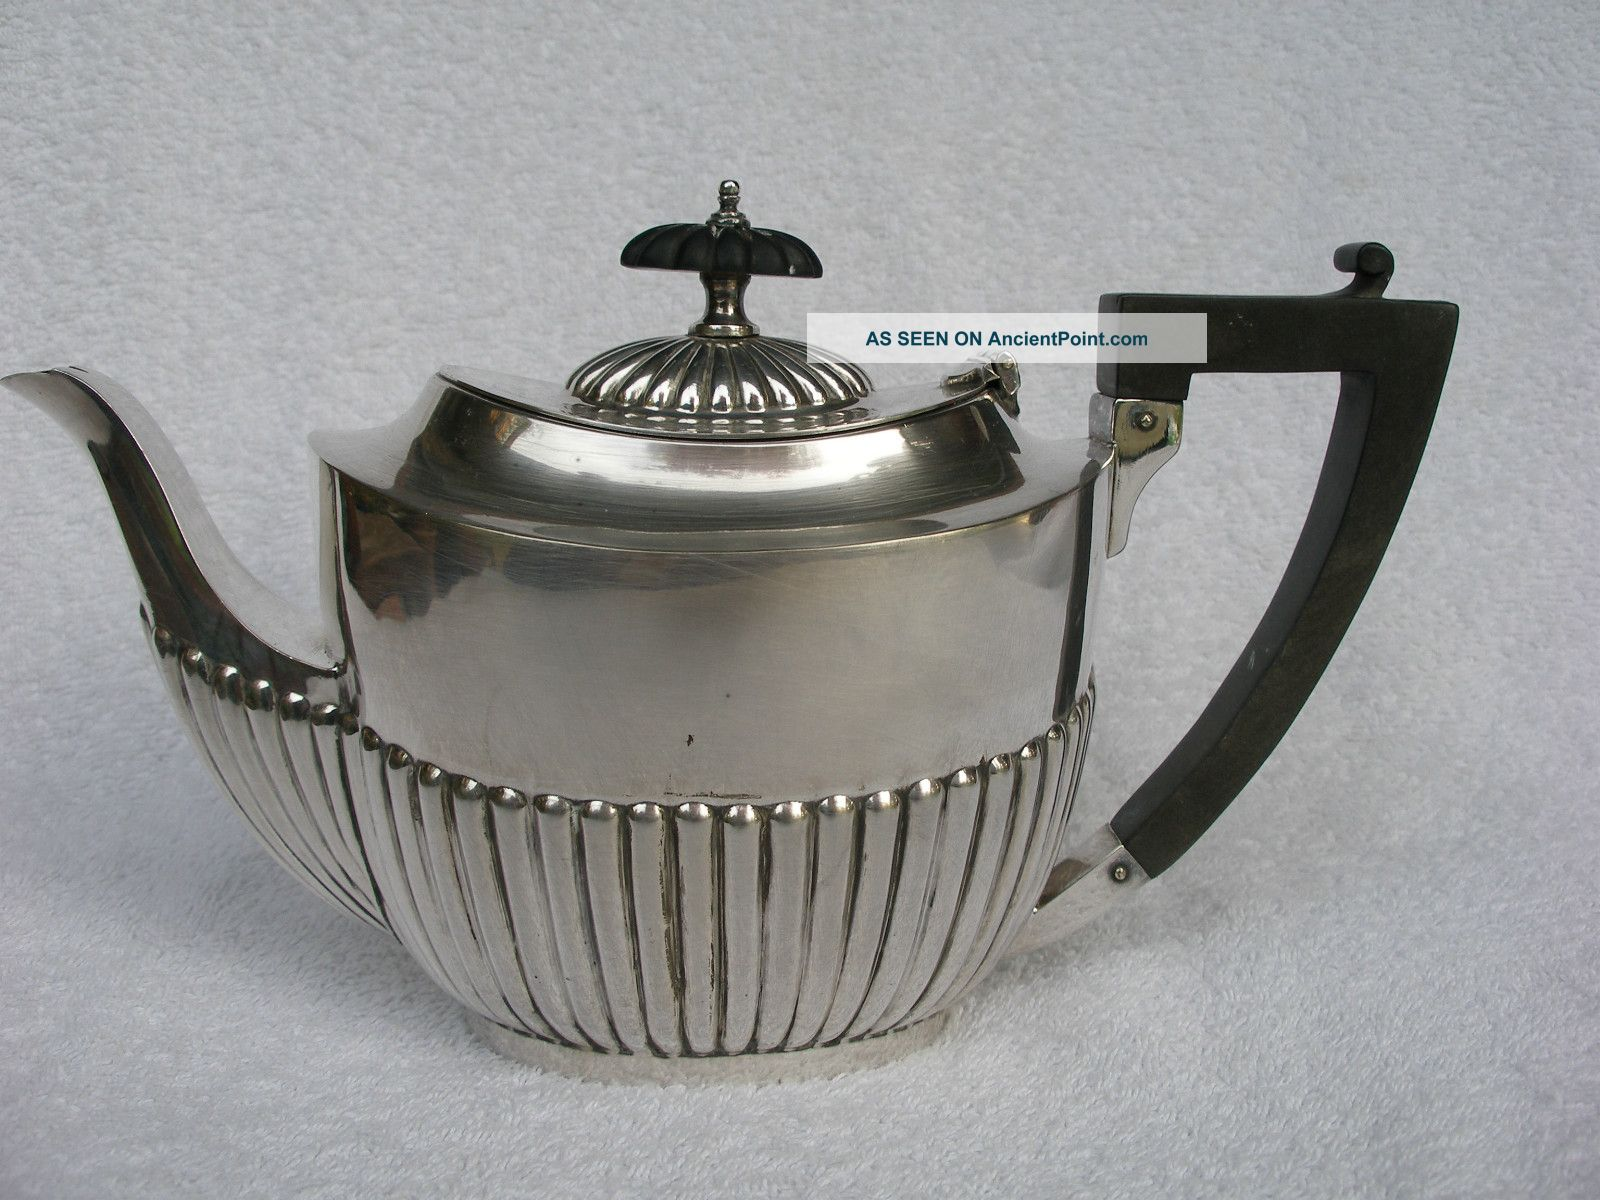 Victorian Silver Plated Bachelor Teapot By Henry Hobson & Sons.  Good Condition. Tea/Coffee Pots & Sets photo